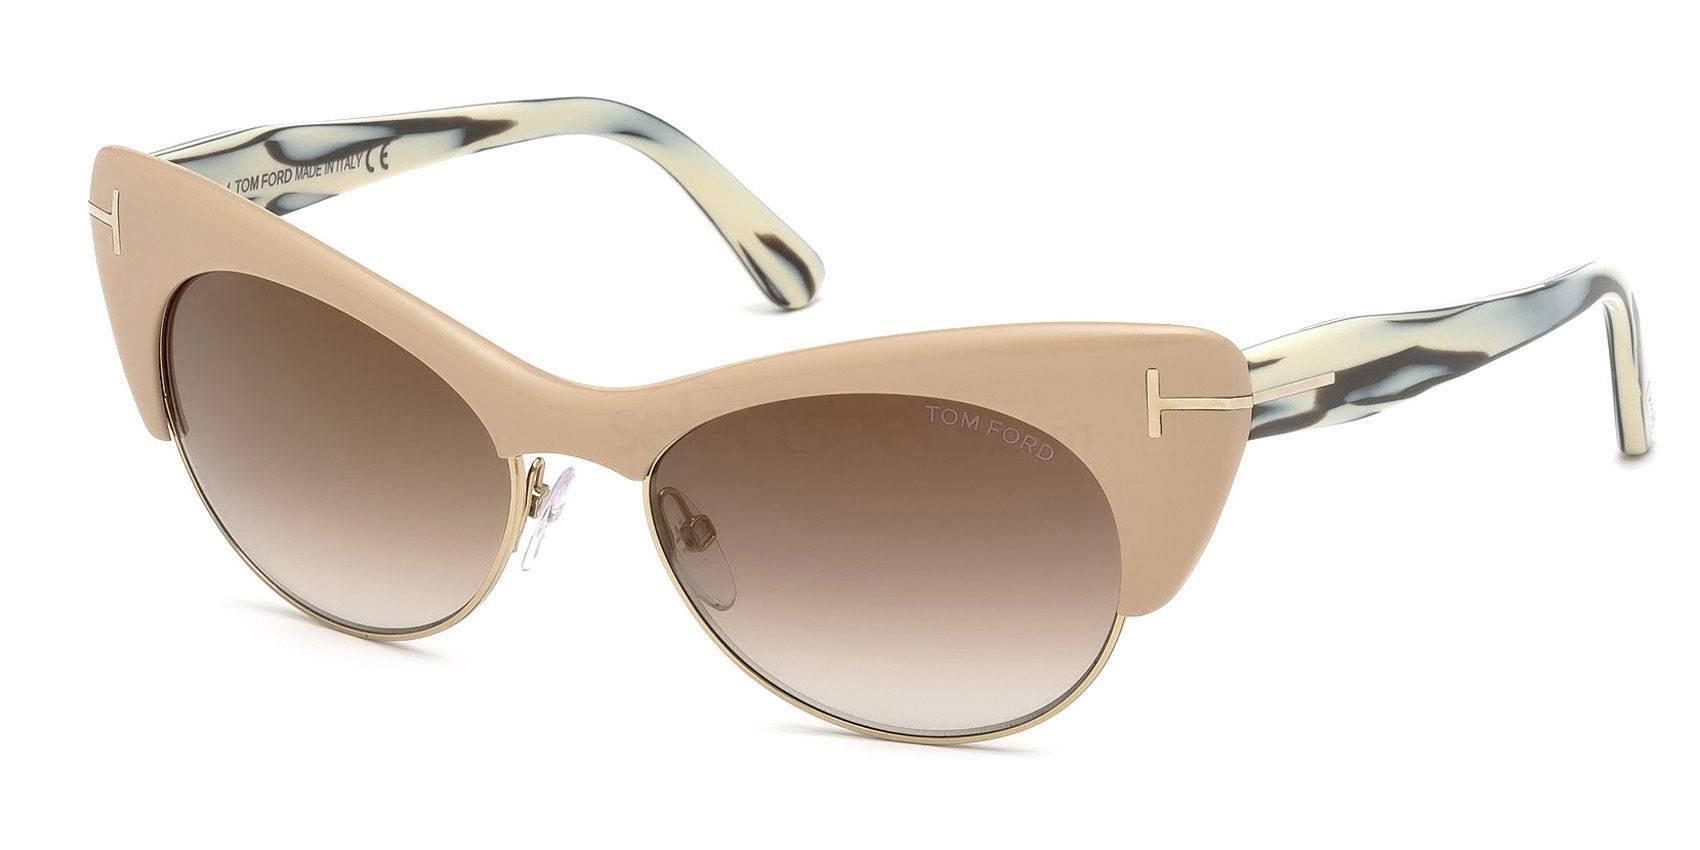 Tom Ford FT0387 sunglasses